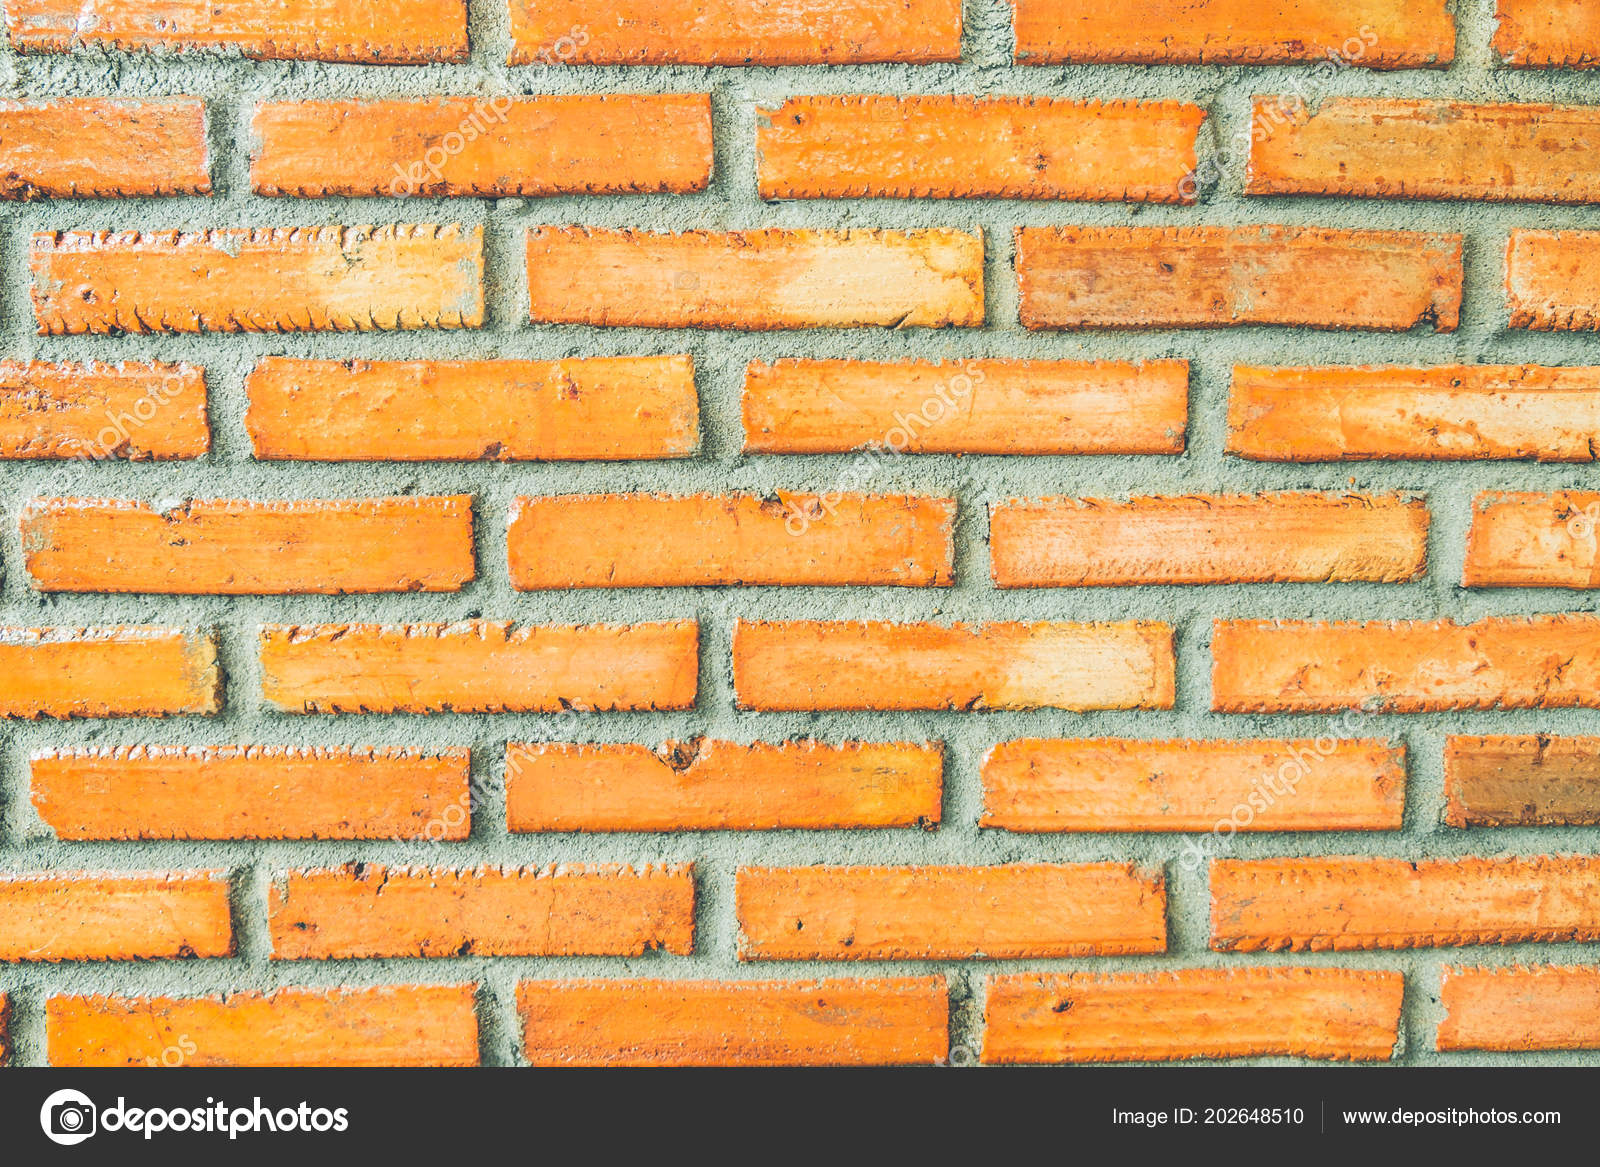 Brick Wall Texture Coffee Shop Cafe Design Cafe Restaurant Cafe Stock Photo C Pavilion016 202648510